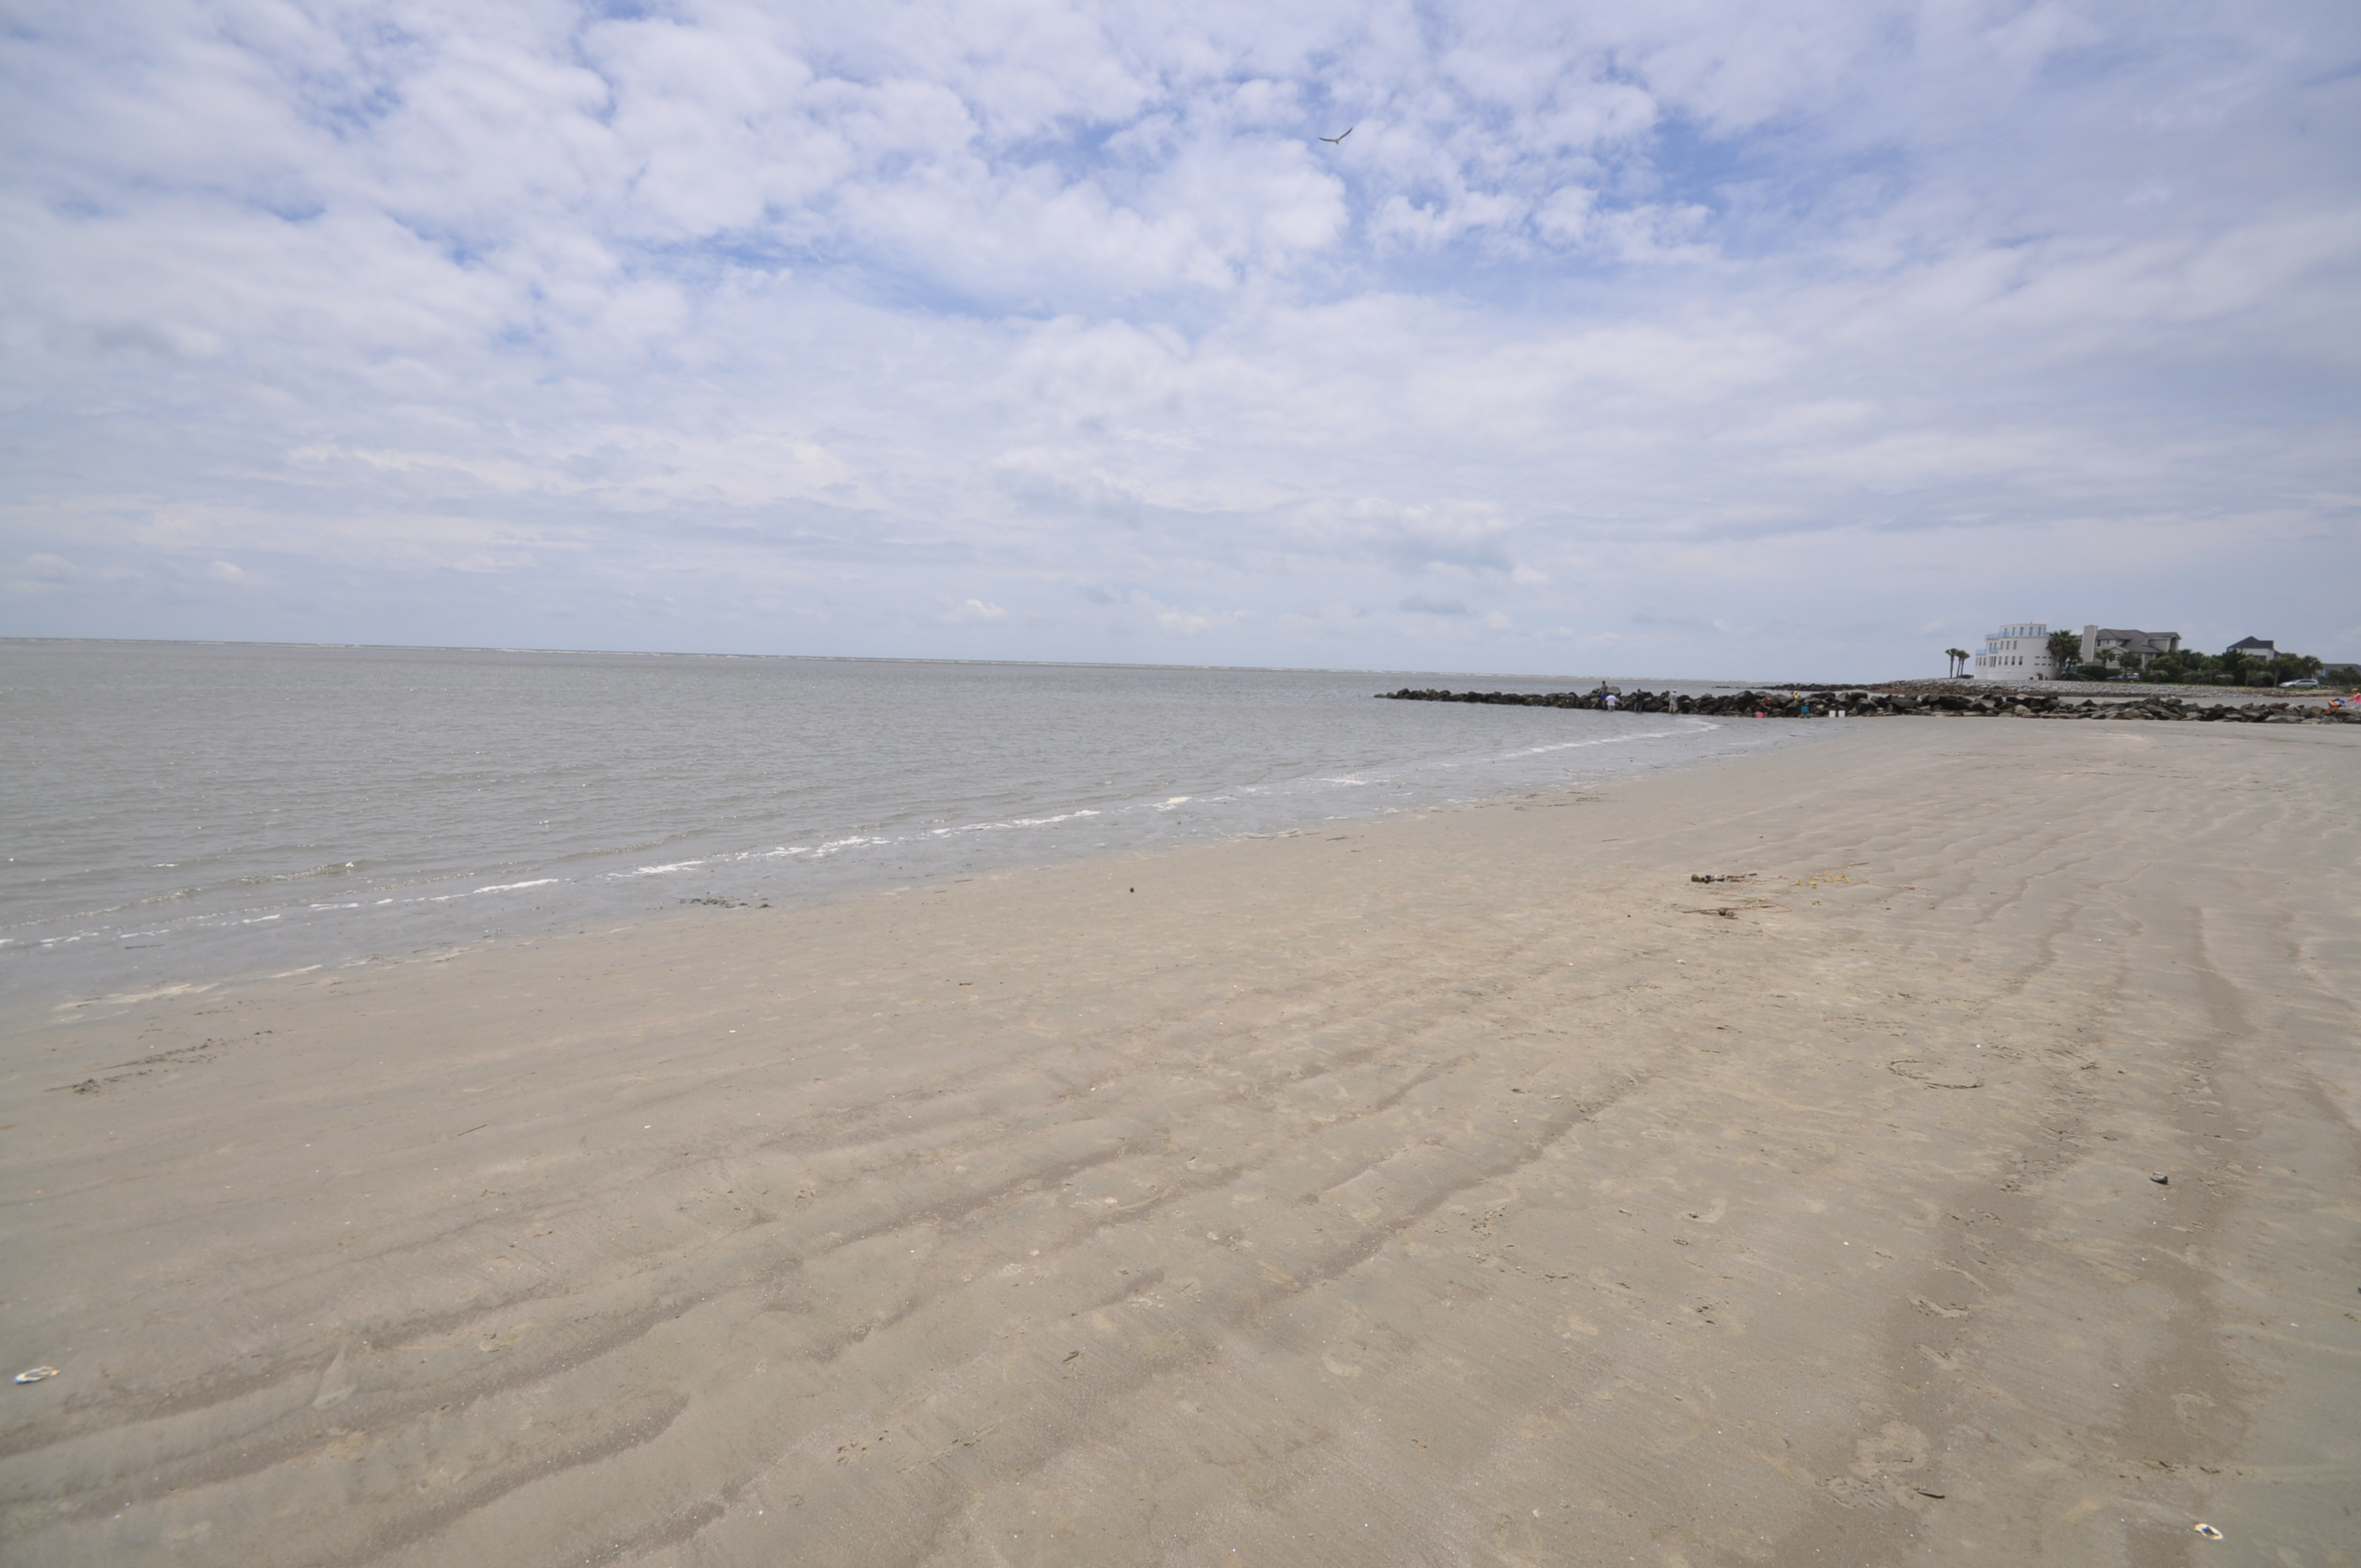 isle of palms bbw dating site Isle of palms or kiawah for summer trip with teens - isle of palms architecture dating back to isle of palms or kiawah for summer trip with teens.